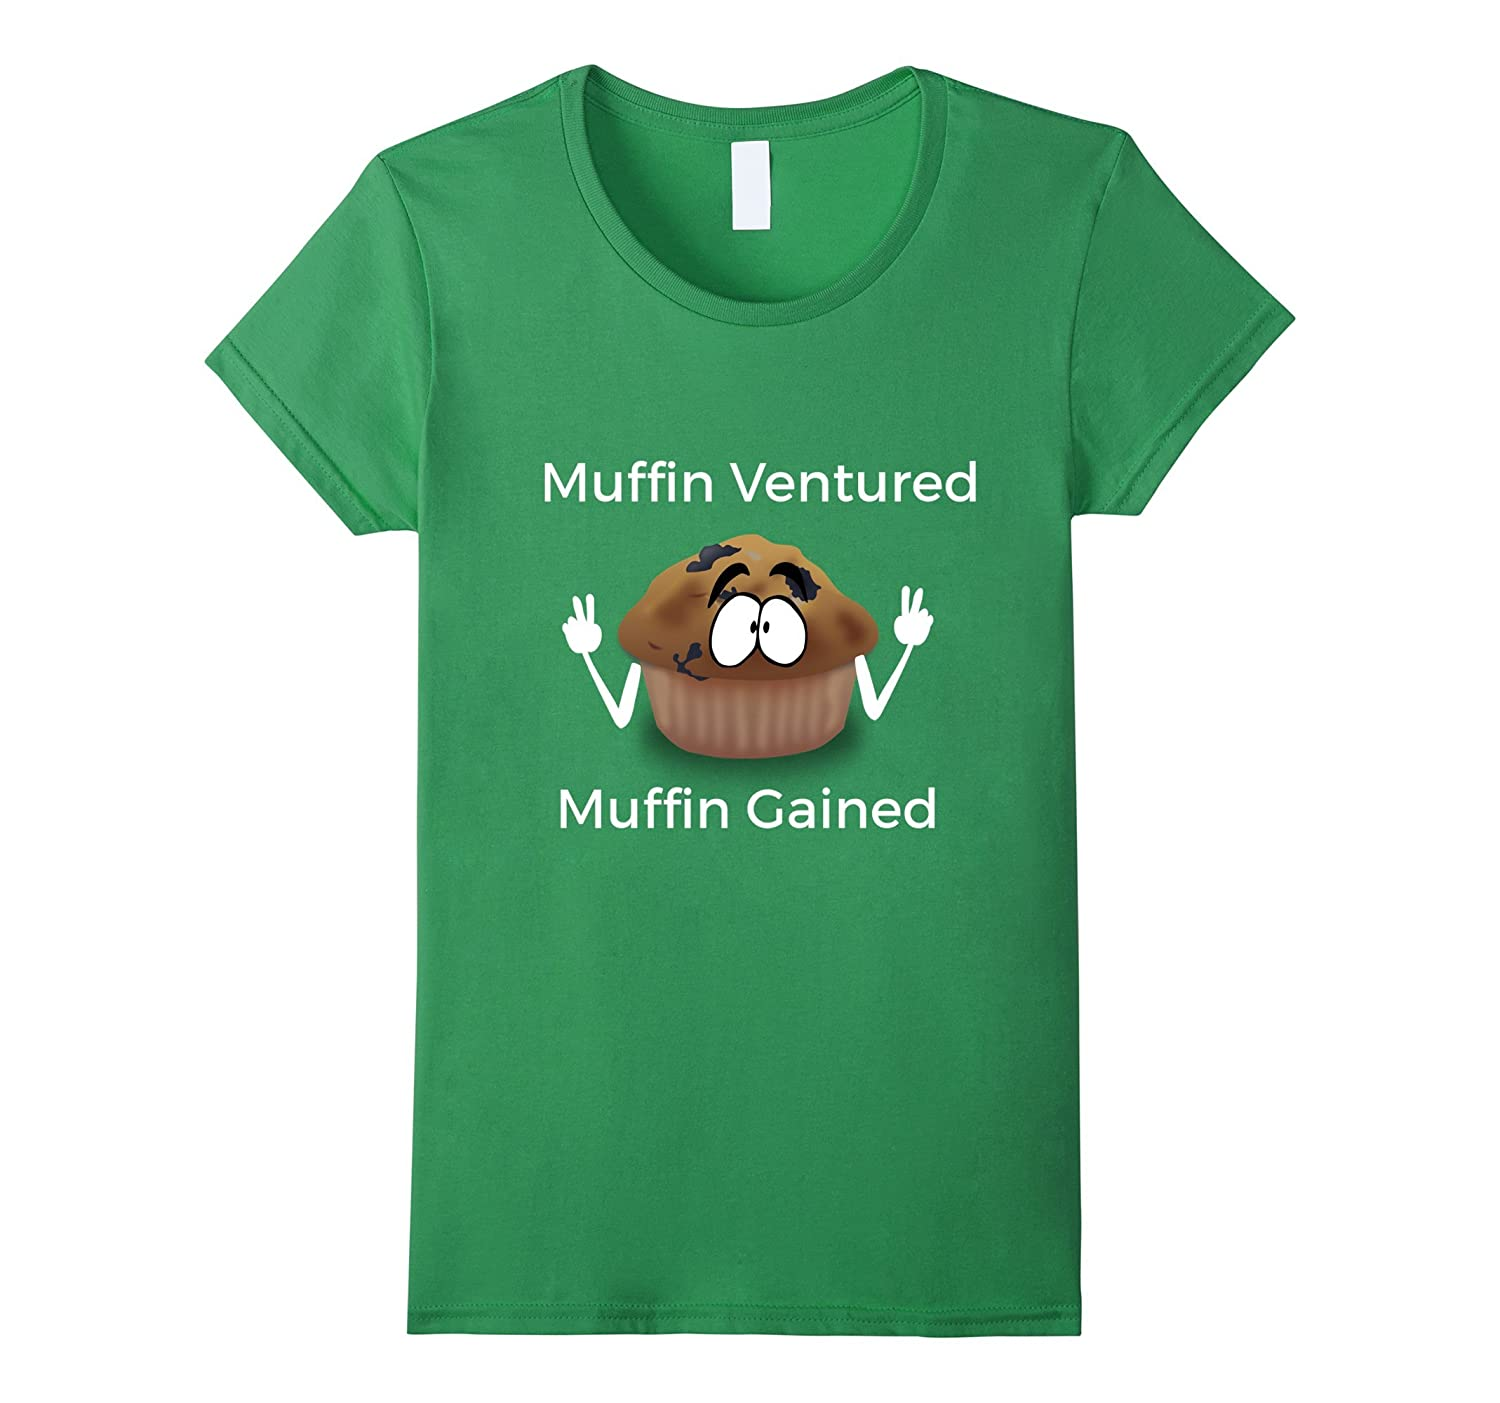 Muffin Ventured Muffin Gained – Funny Pun Baked Foods shirt